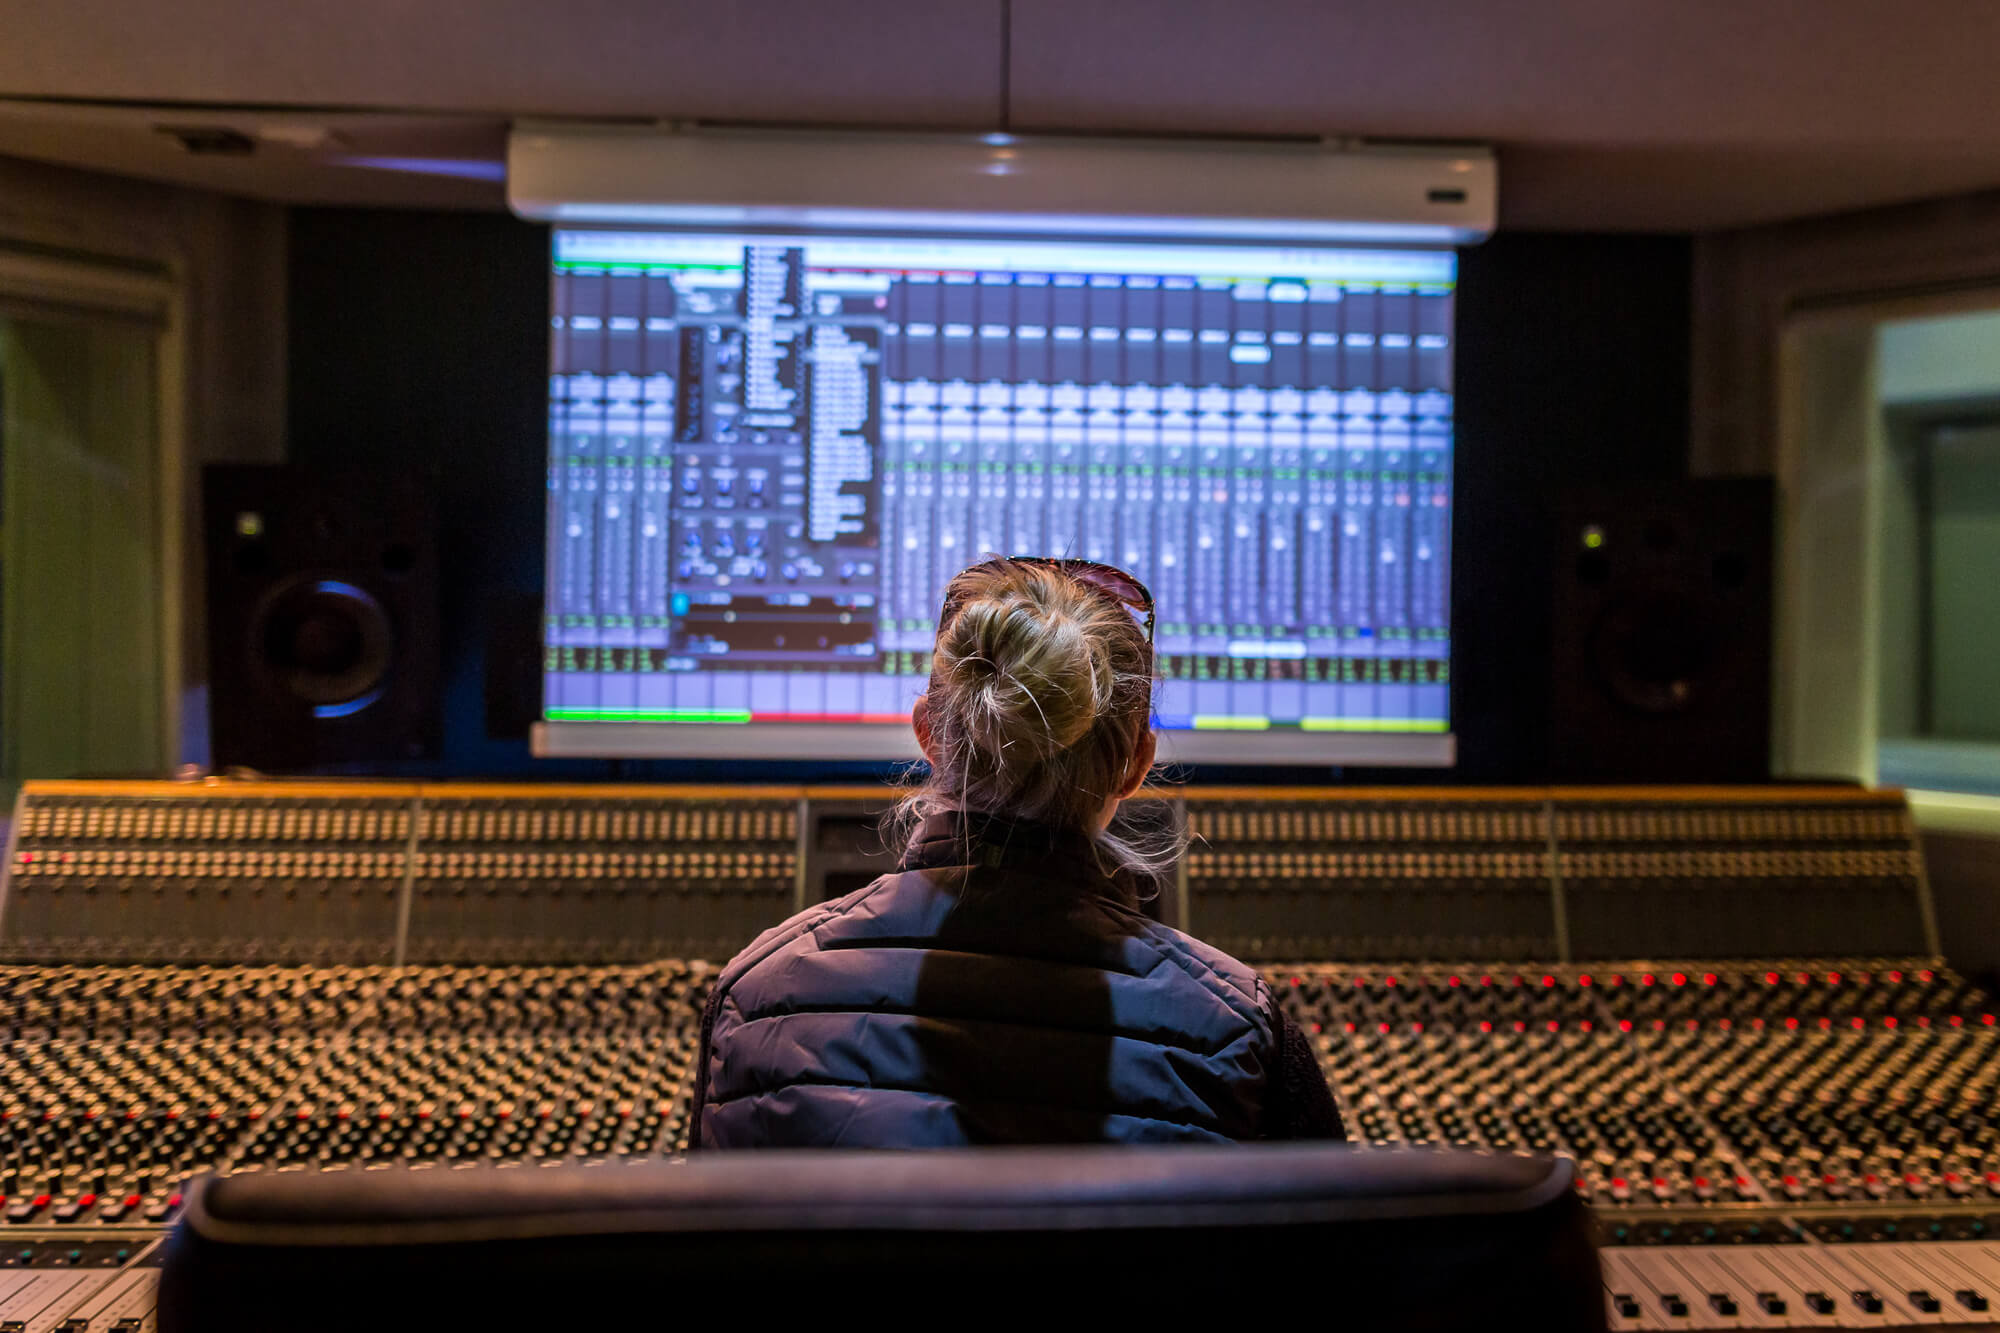 Student sat in music production control room